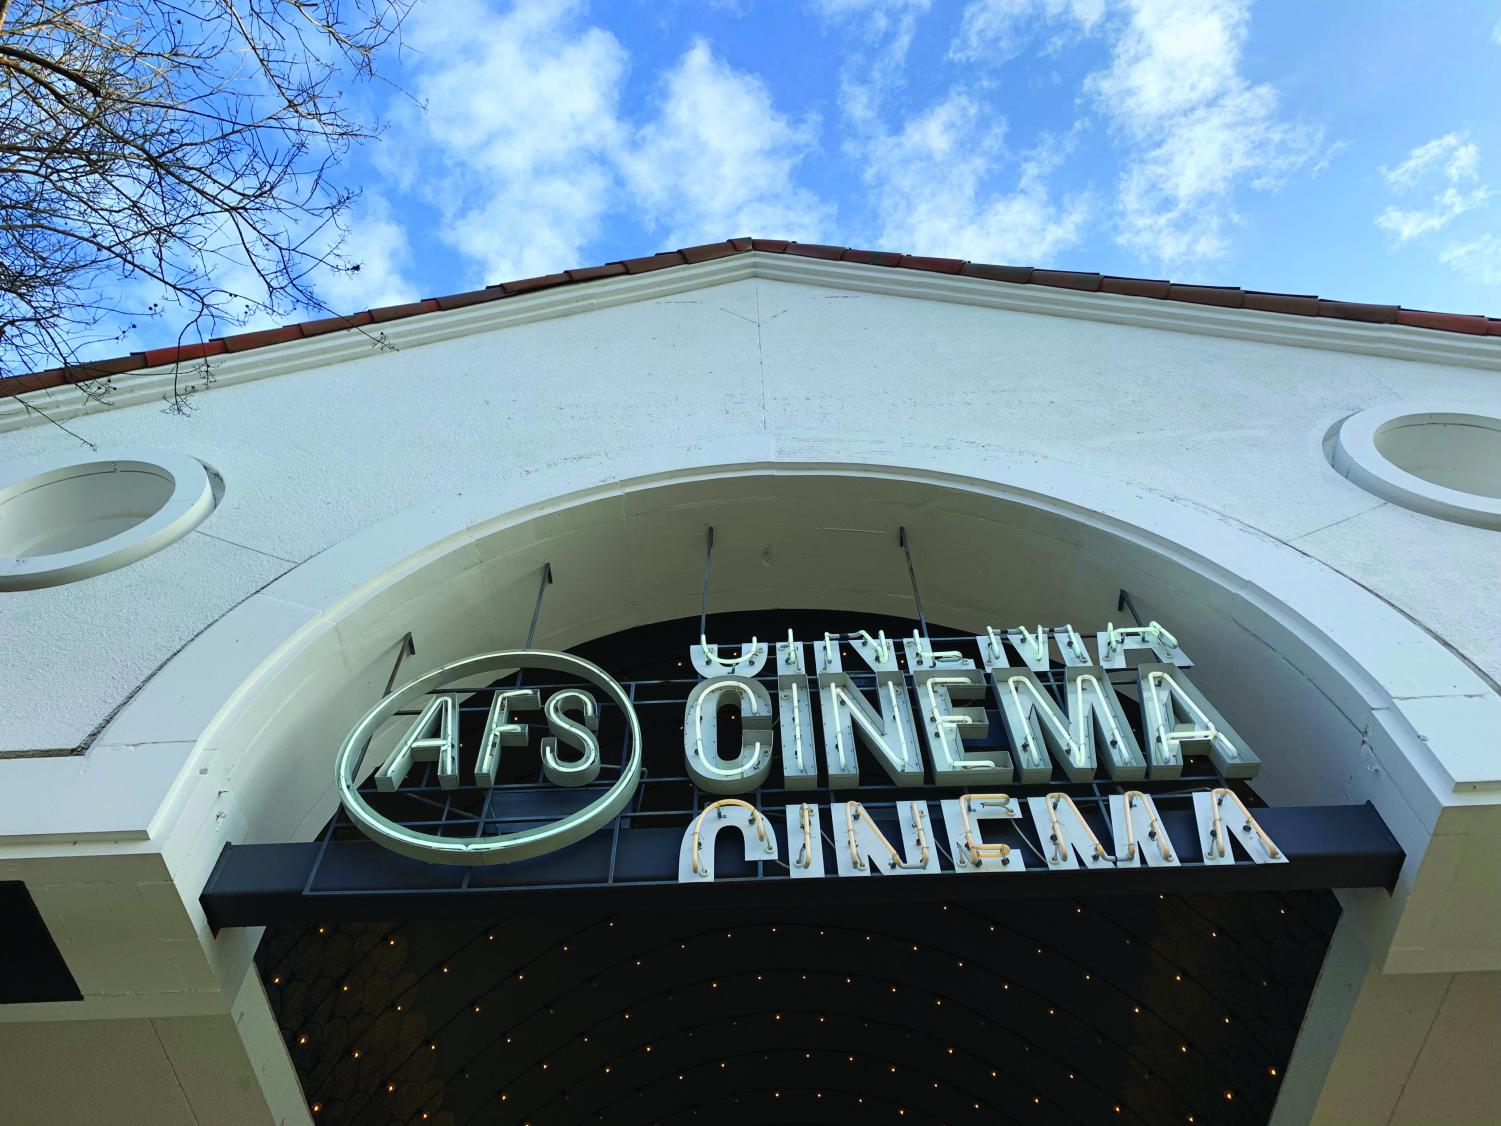 Austin Film Society (AFS), located in North Austin, is a nonprofit cinema started by Austin based director Richard Linklator. The cinema screens a variety of modern and classic films. photo by Helena Lara